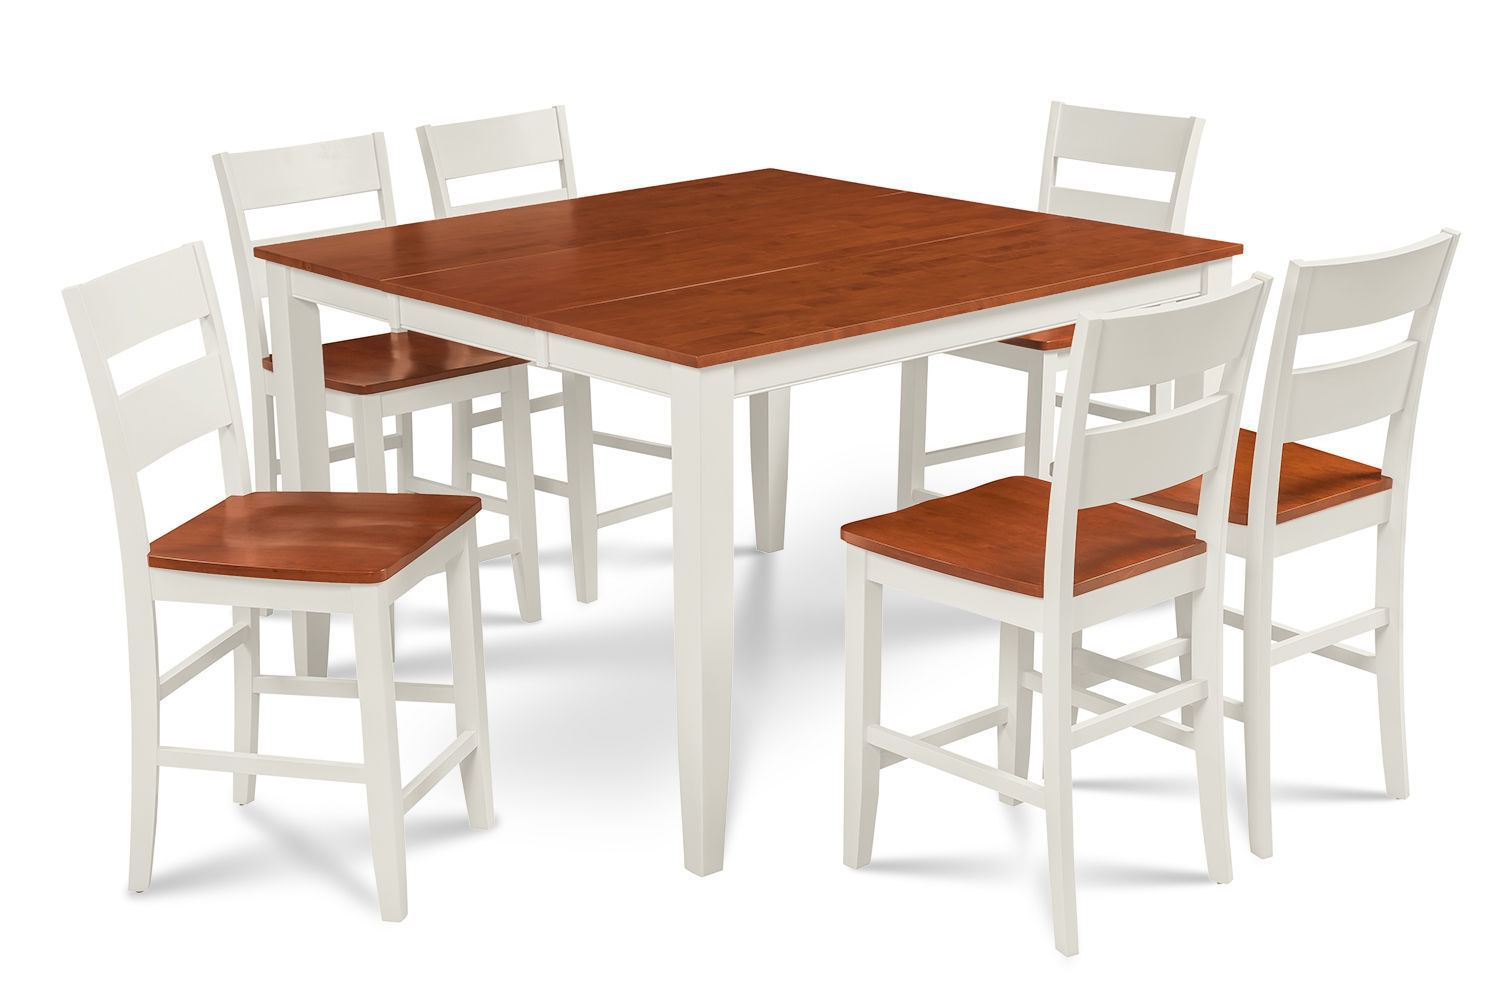 "54"" SQUARE COUNTER HEIGHT TABLE DINING ROOM SET W. WOODEN SEATS WHITE CHERRY"